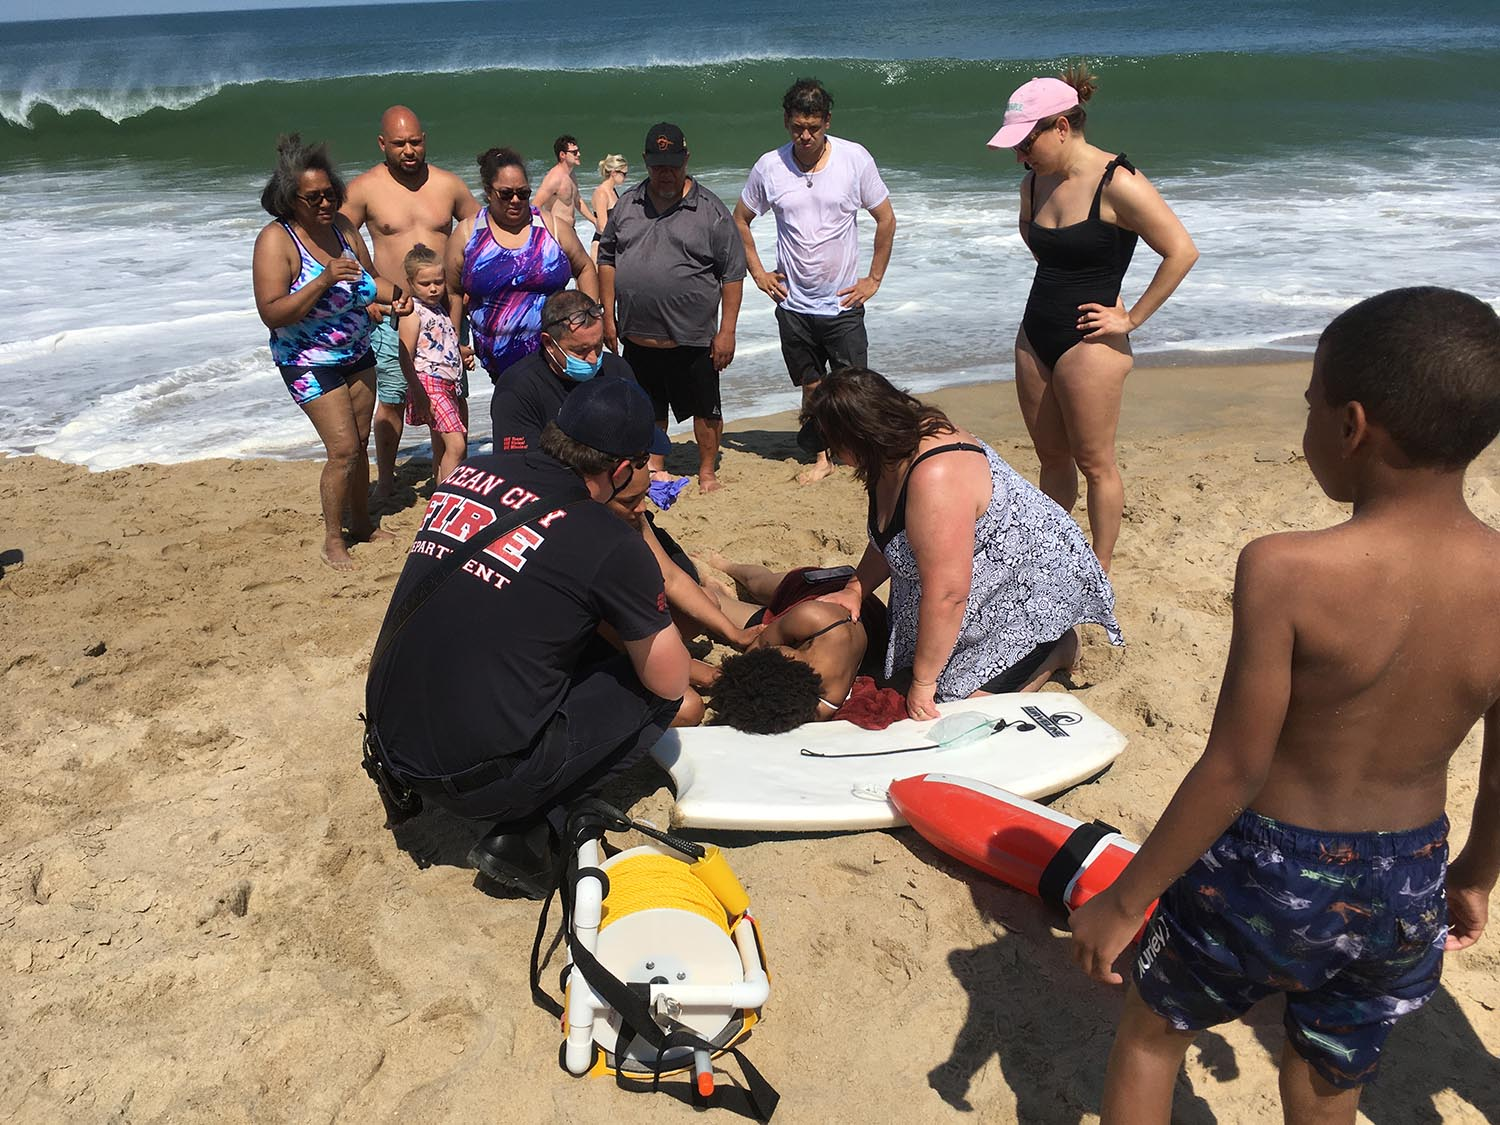 A Good Samaritan Rescue Woman caught in a tearing current;  Reminder to